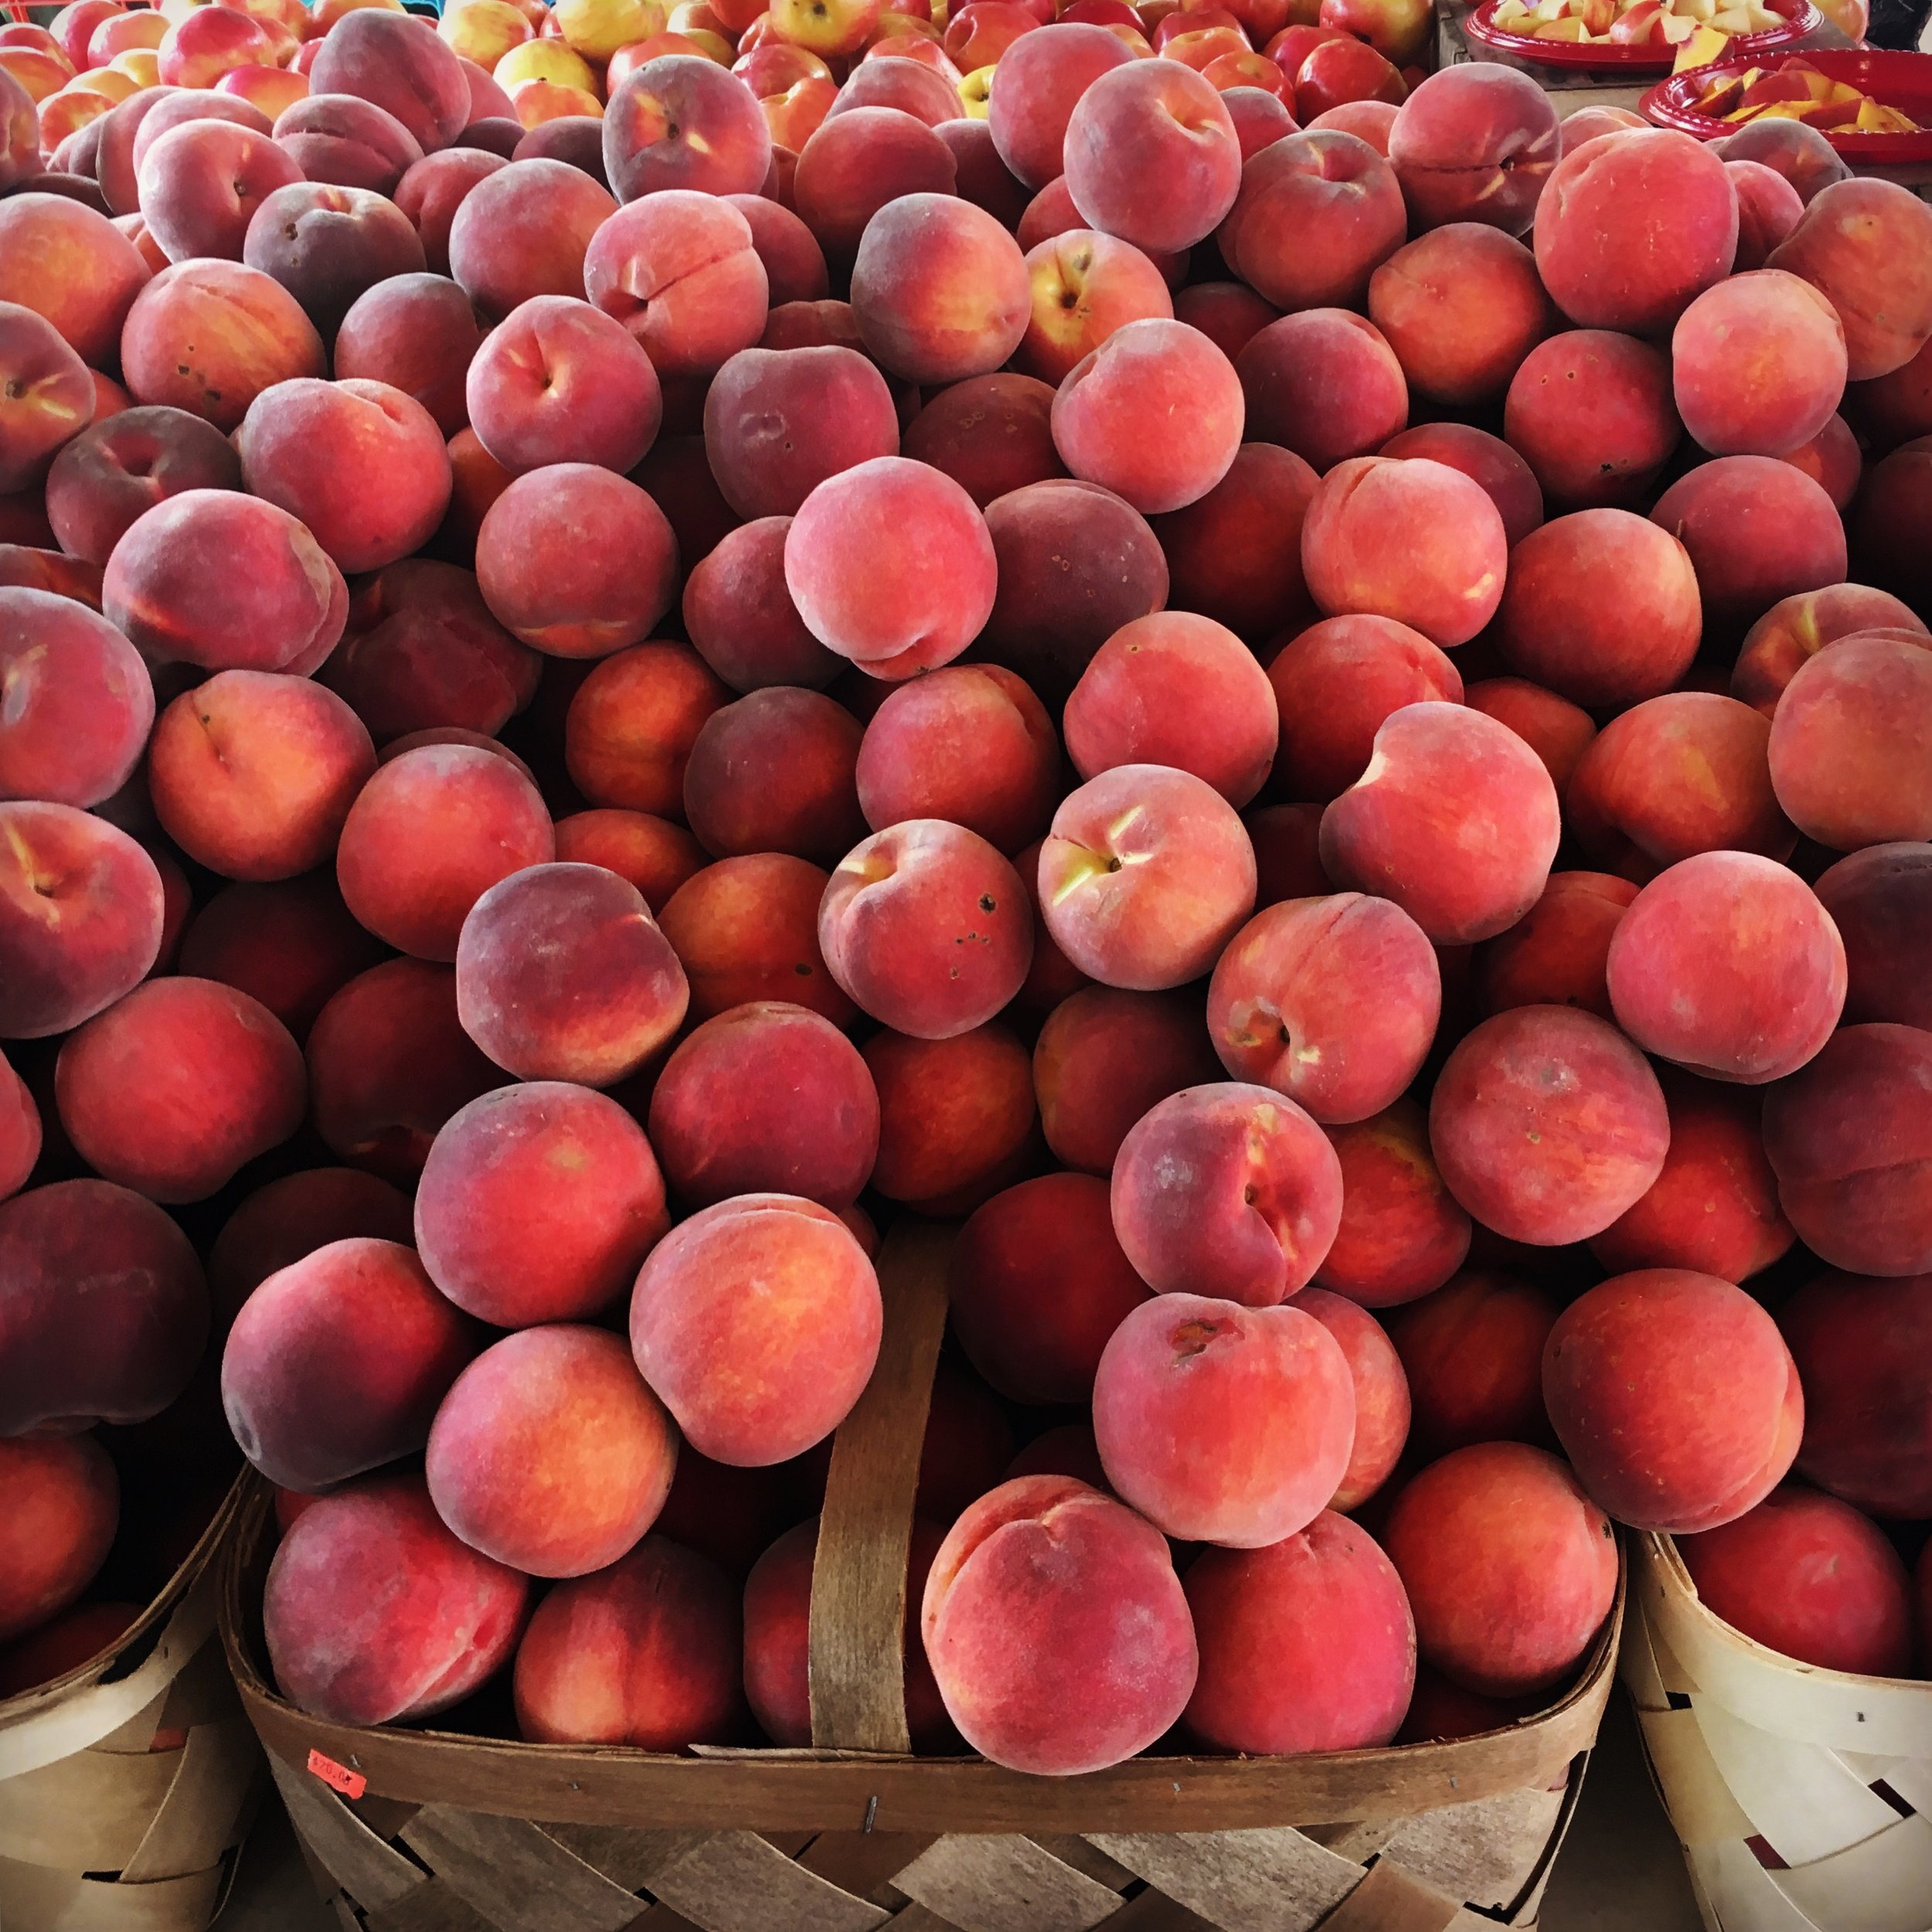 Image: Overflowing baskets of peaches at a farmer's market. Image copyright: Elisabeth Caron